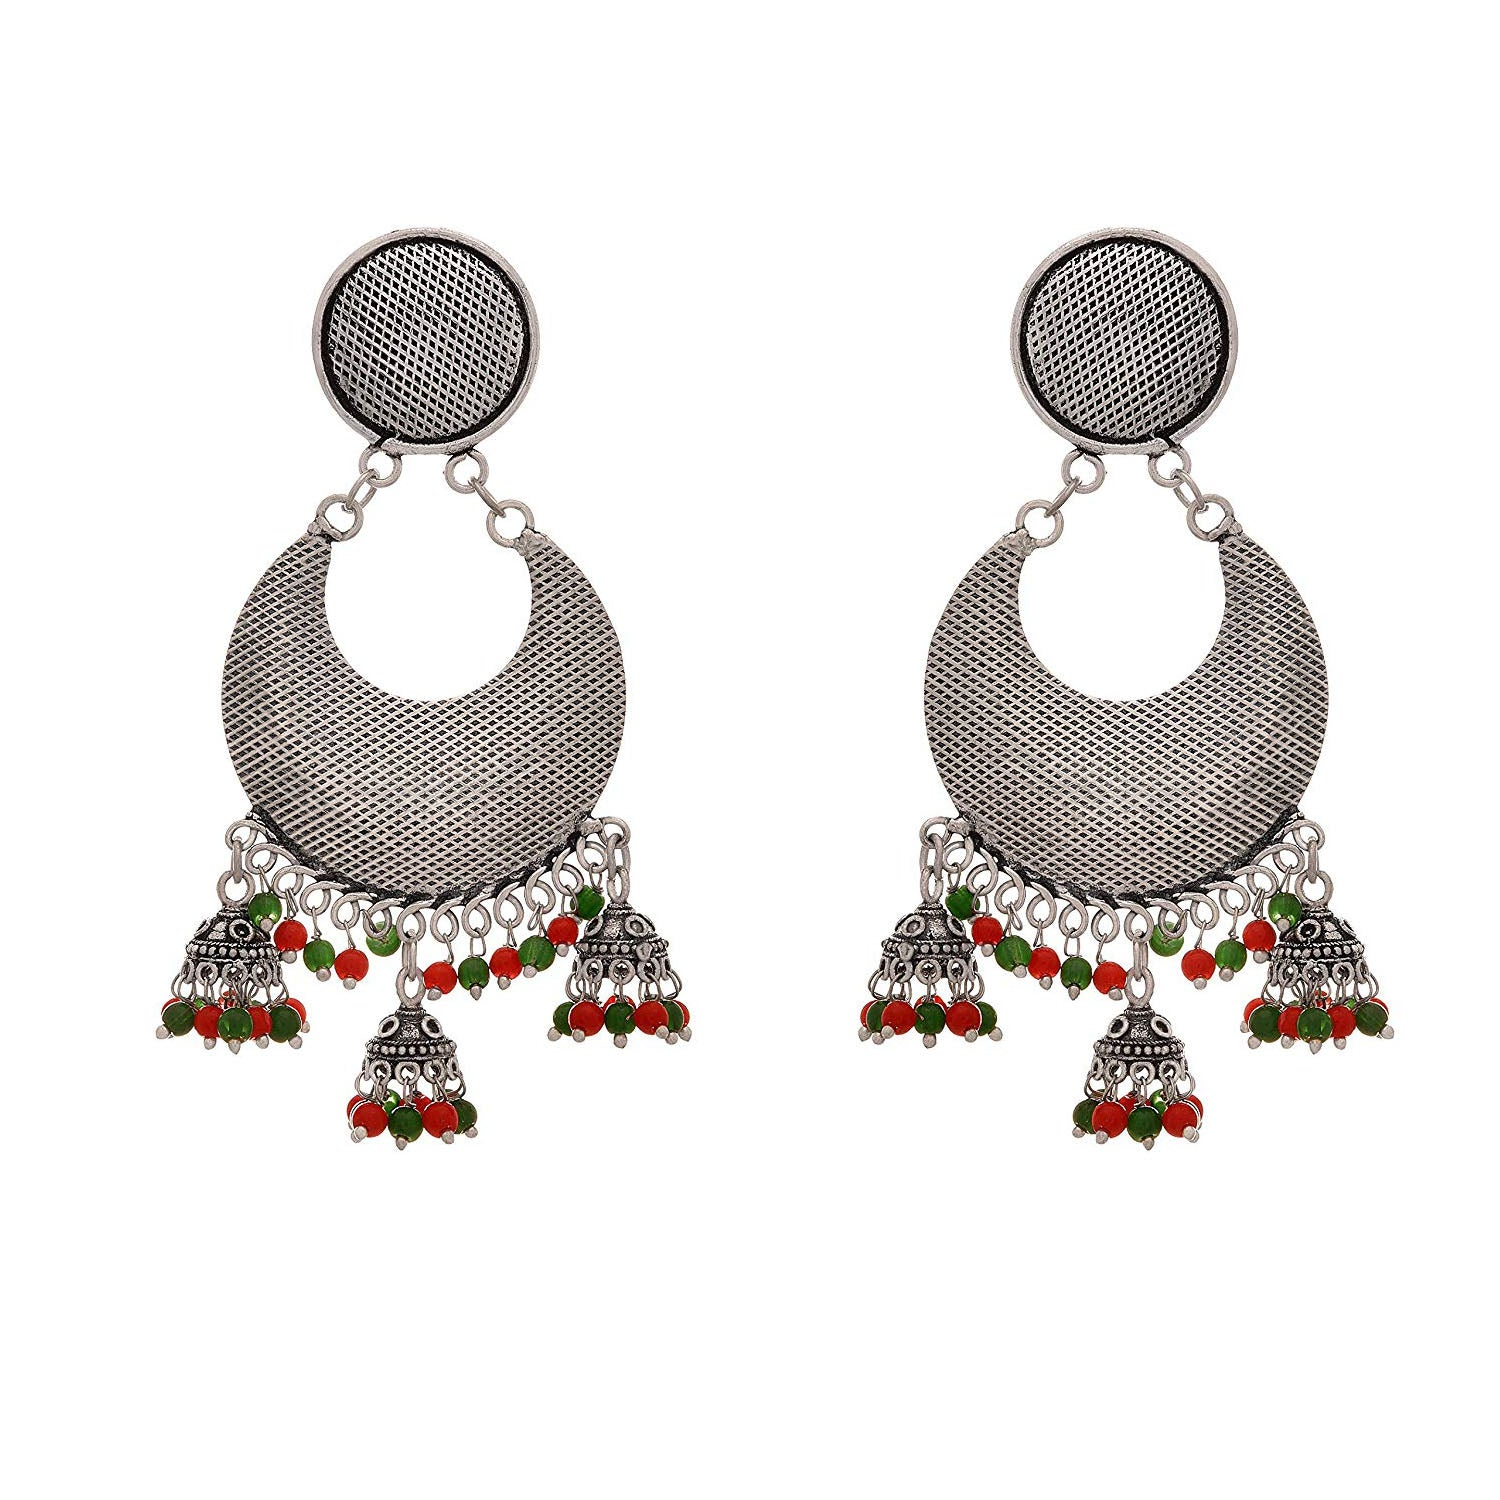 JFL - Traditional Ethnic Handmade German Silver Plated Oxidised Chandbali Earring for Women & Girls.